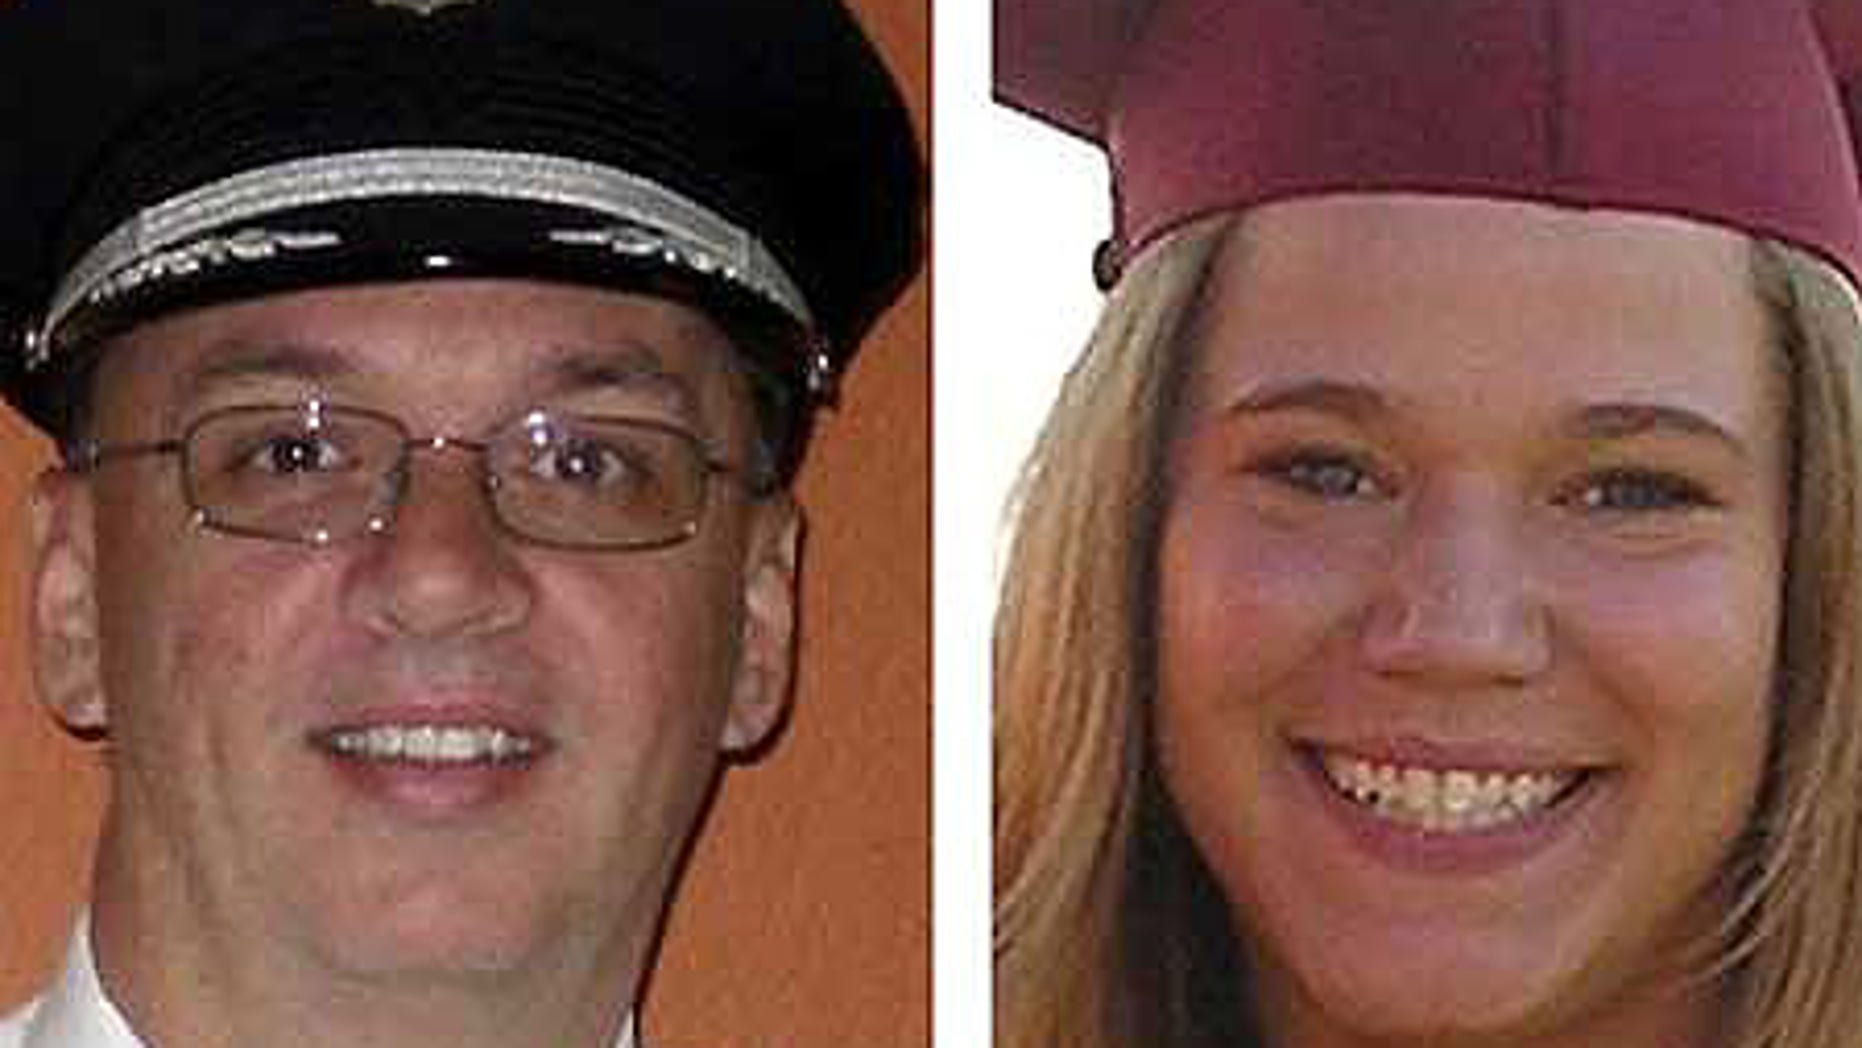 Flight 3407 Pilot Marvin Renslow and First Officer Rebecca Shaw.